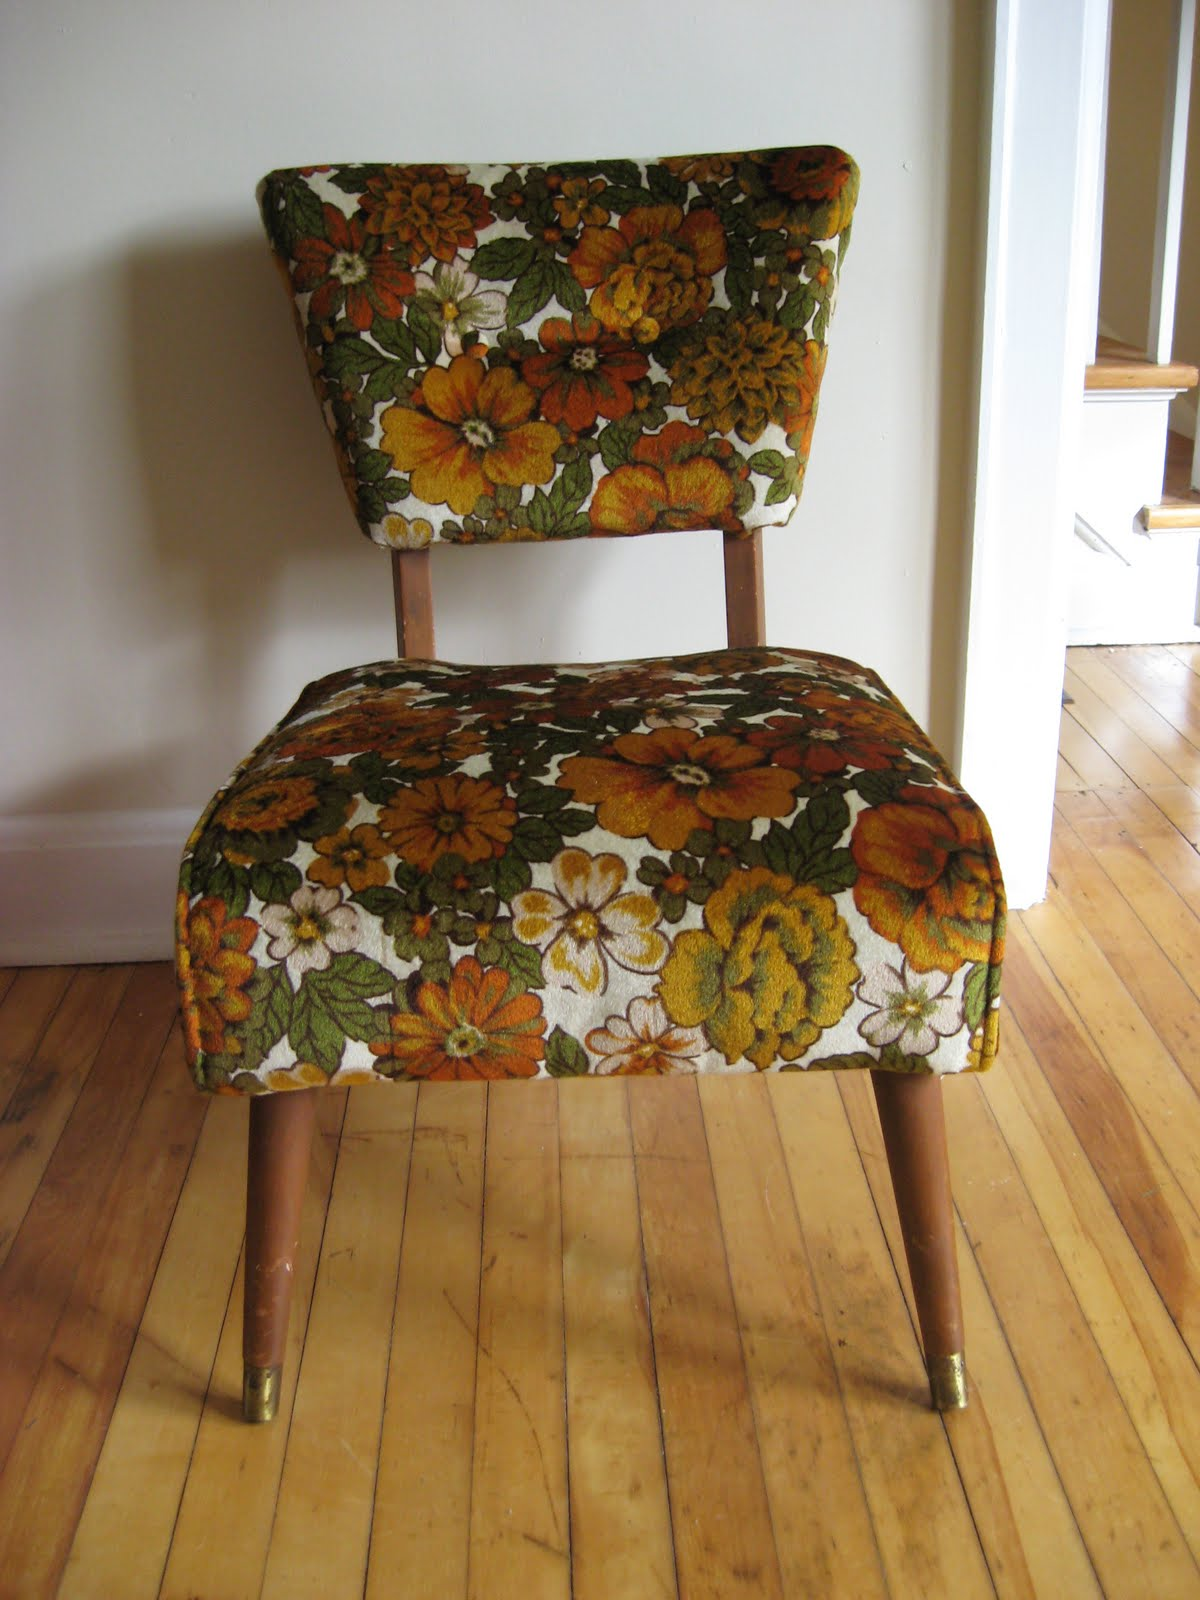 ugly thrift store chair covered in nineteen seventies floral fabric